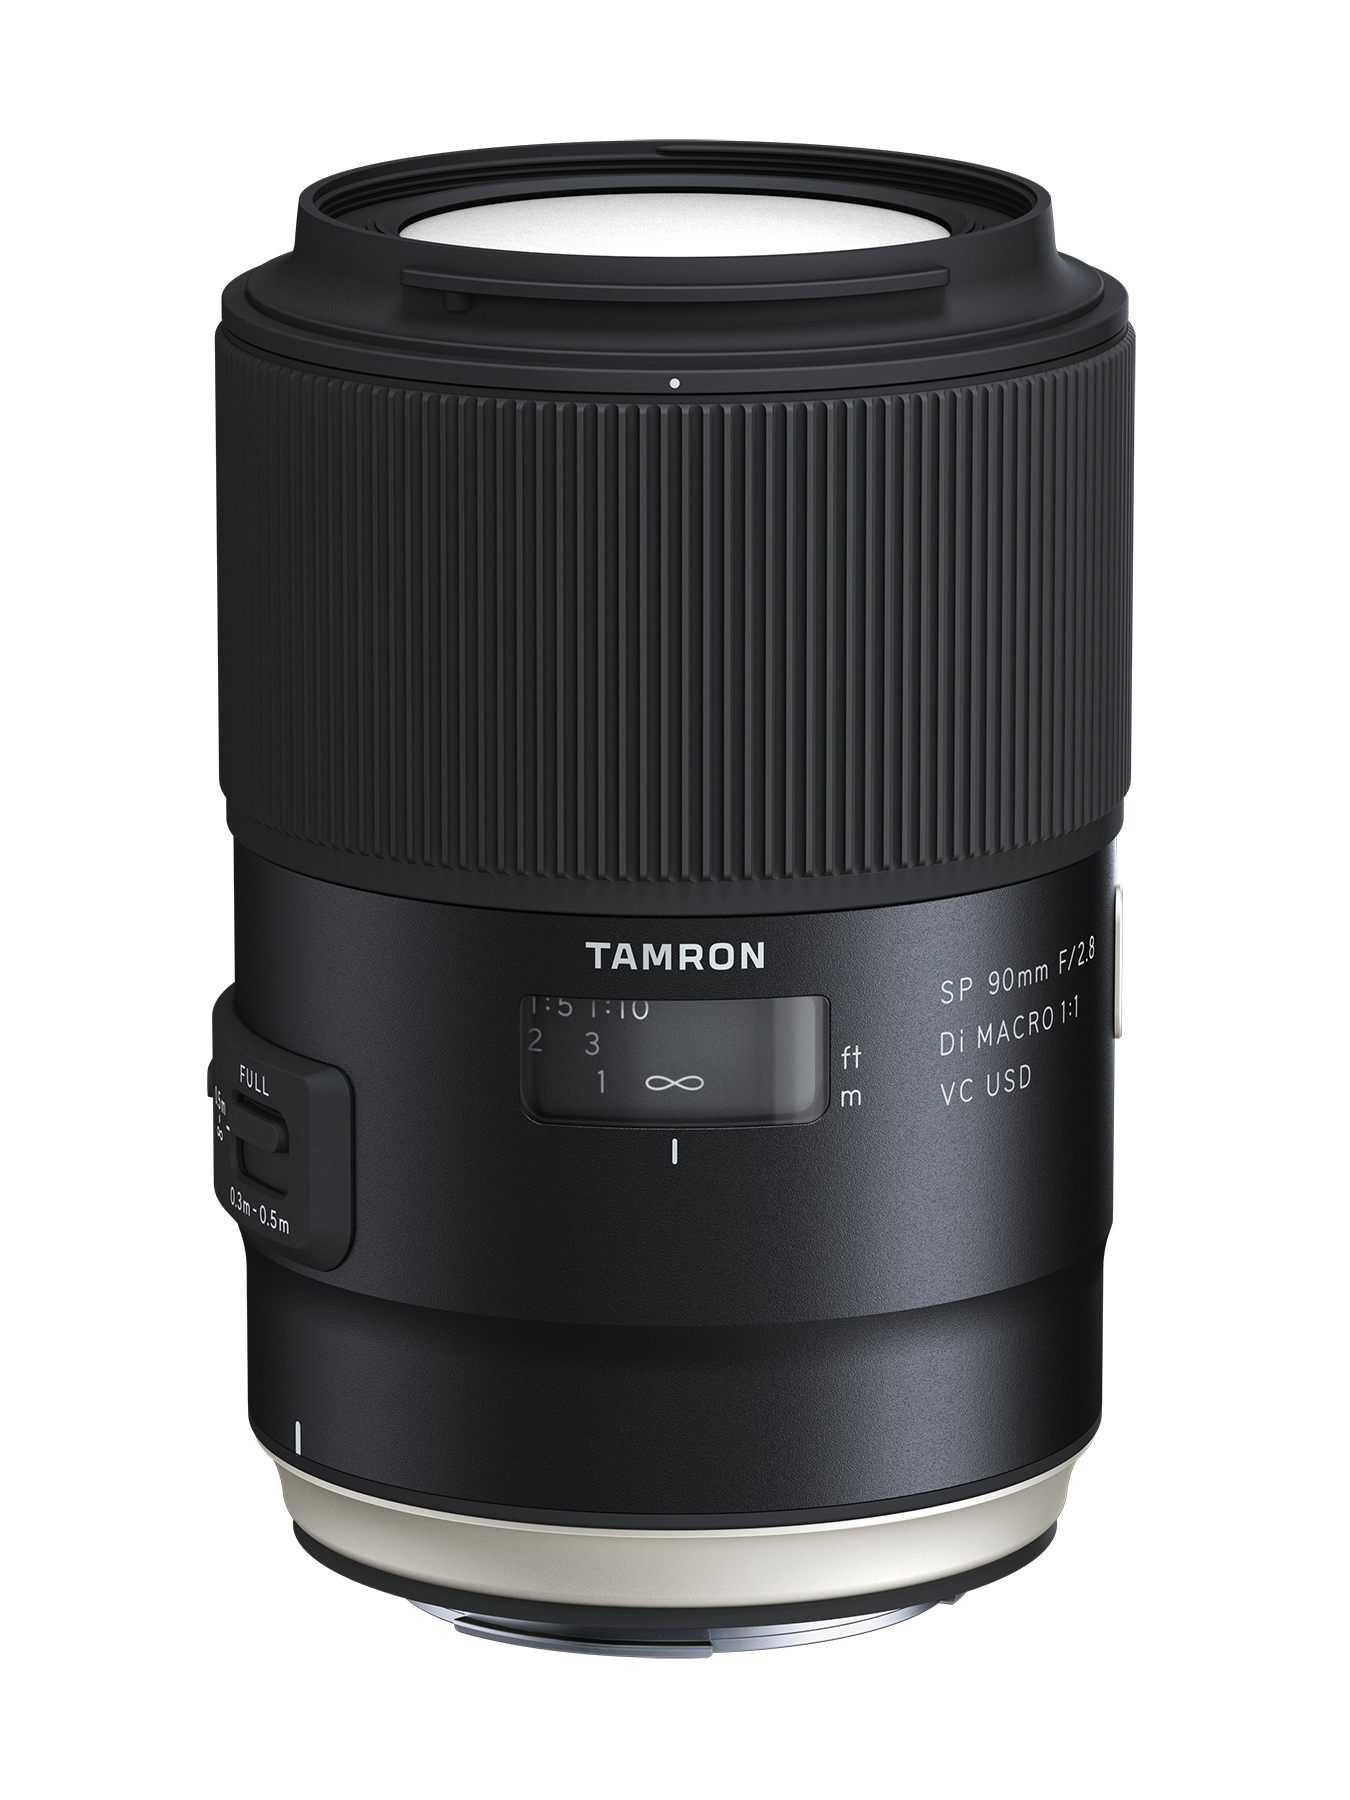 SP 90mm F/2.8 Di VC USD 1:1 MACRO (Model F017)